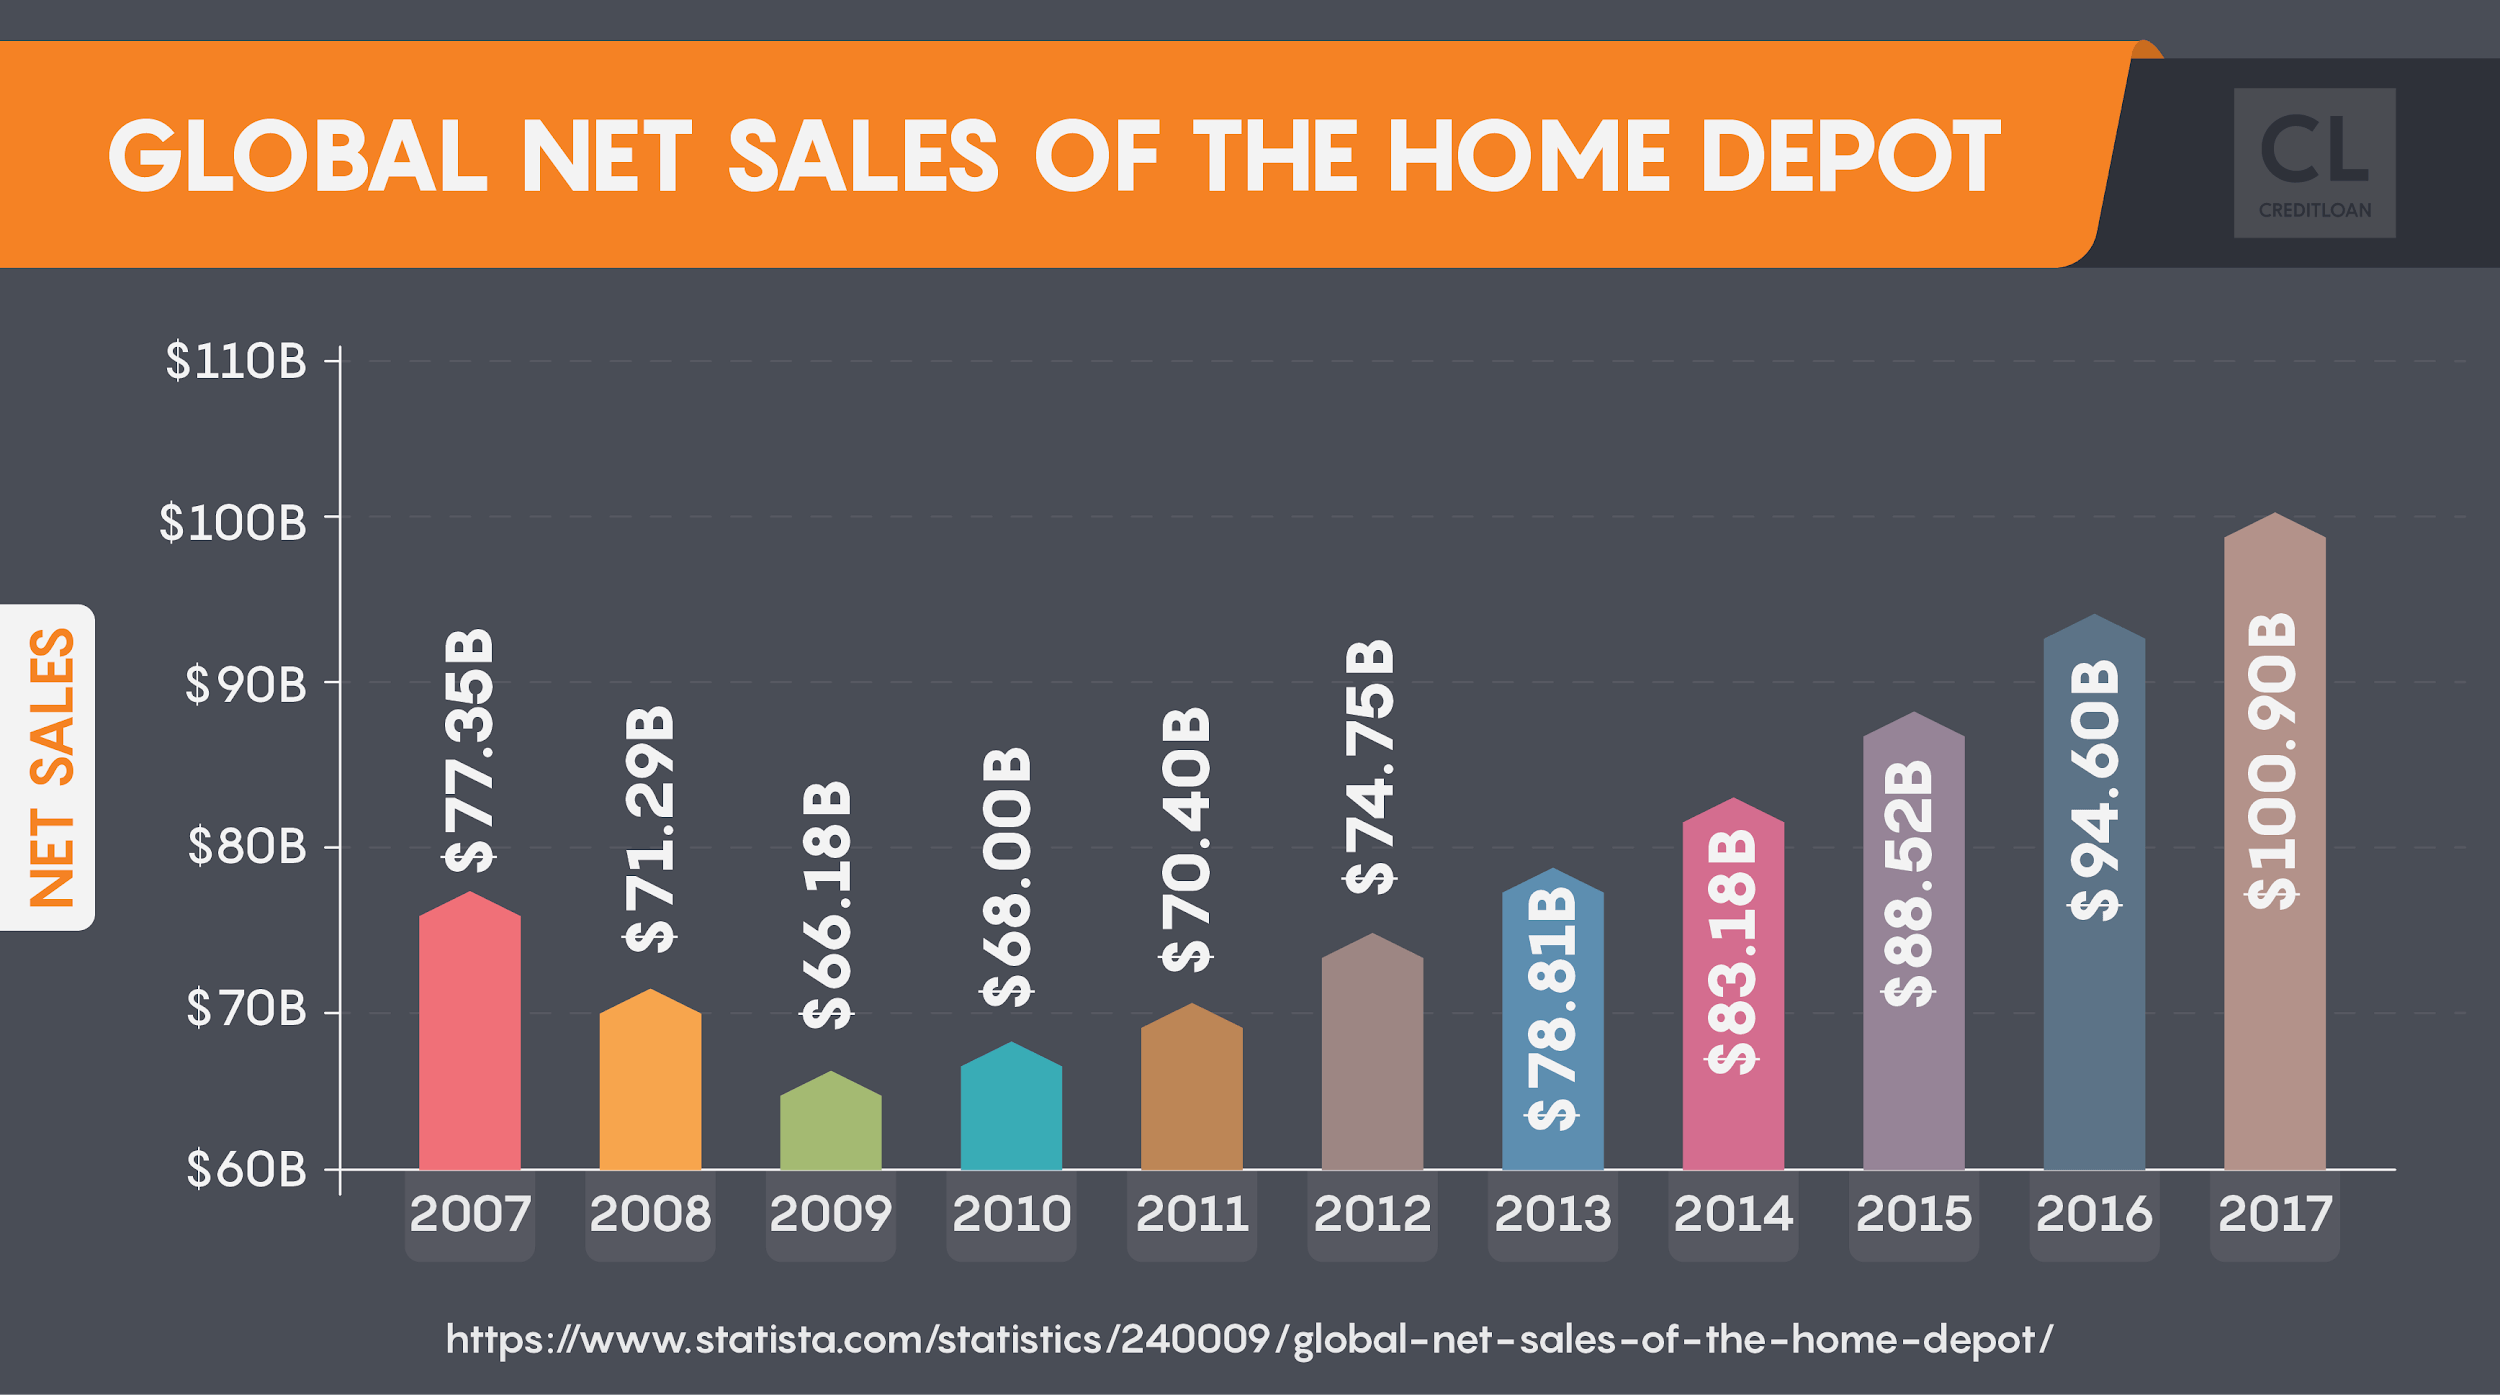 Global Net Sales of the Home Depot from 2007-2017